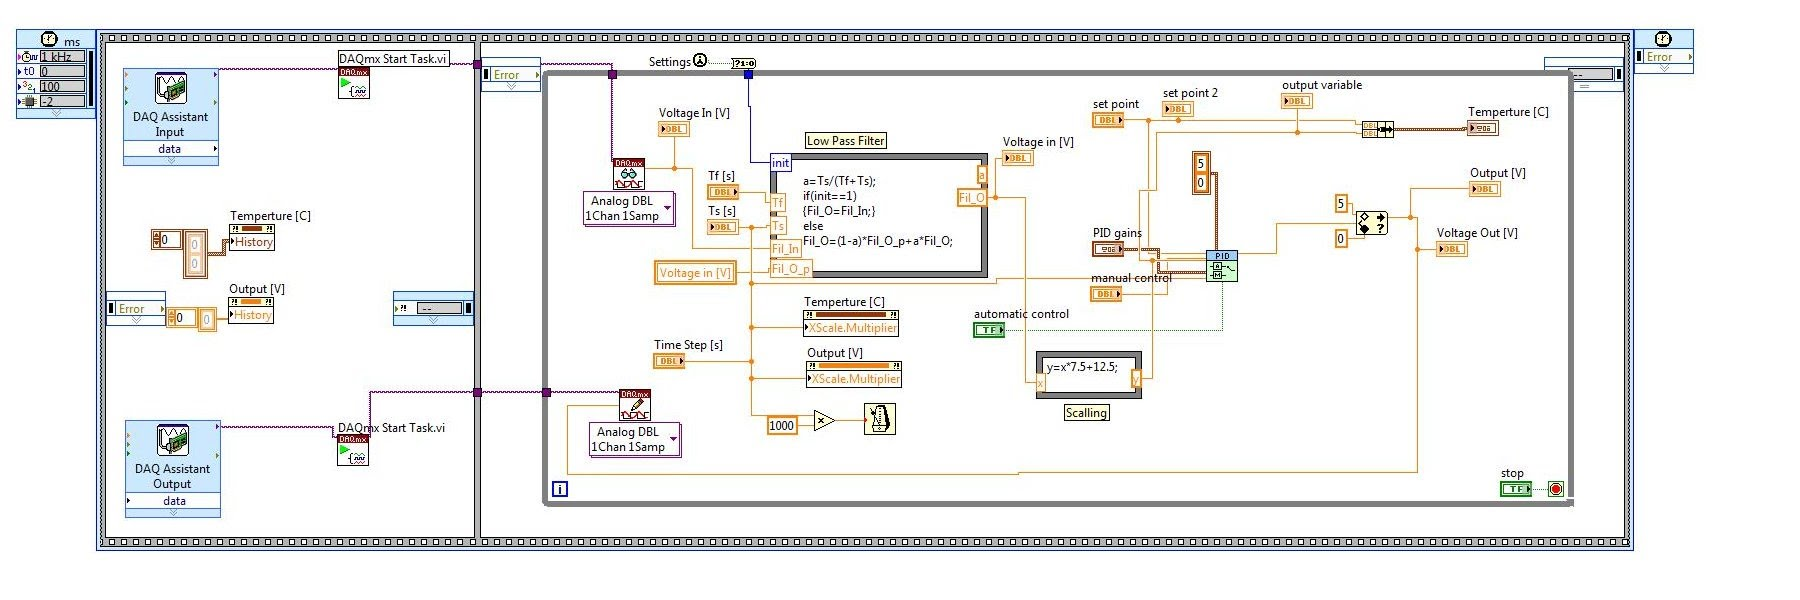 hight resolution of 3 1 block diagram view of the air heater vi